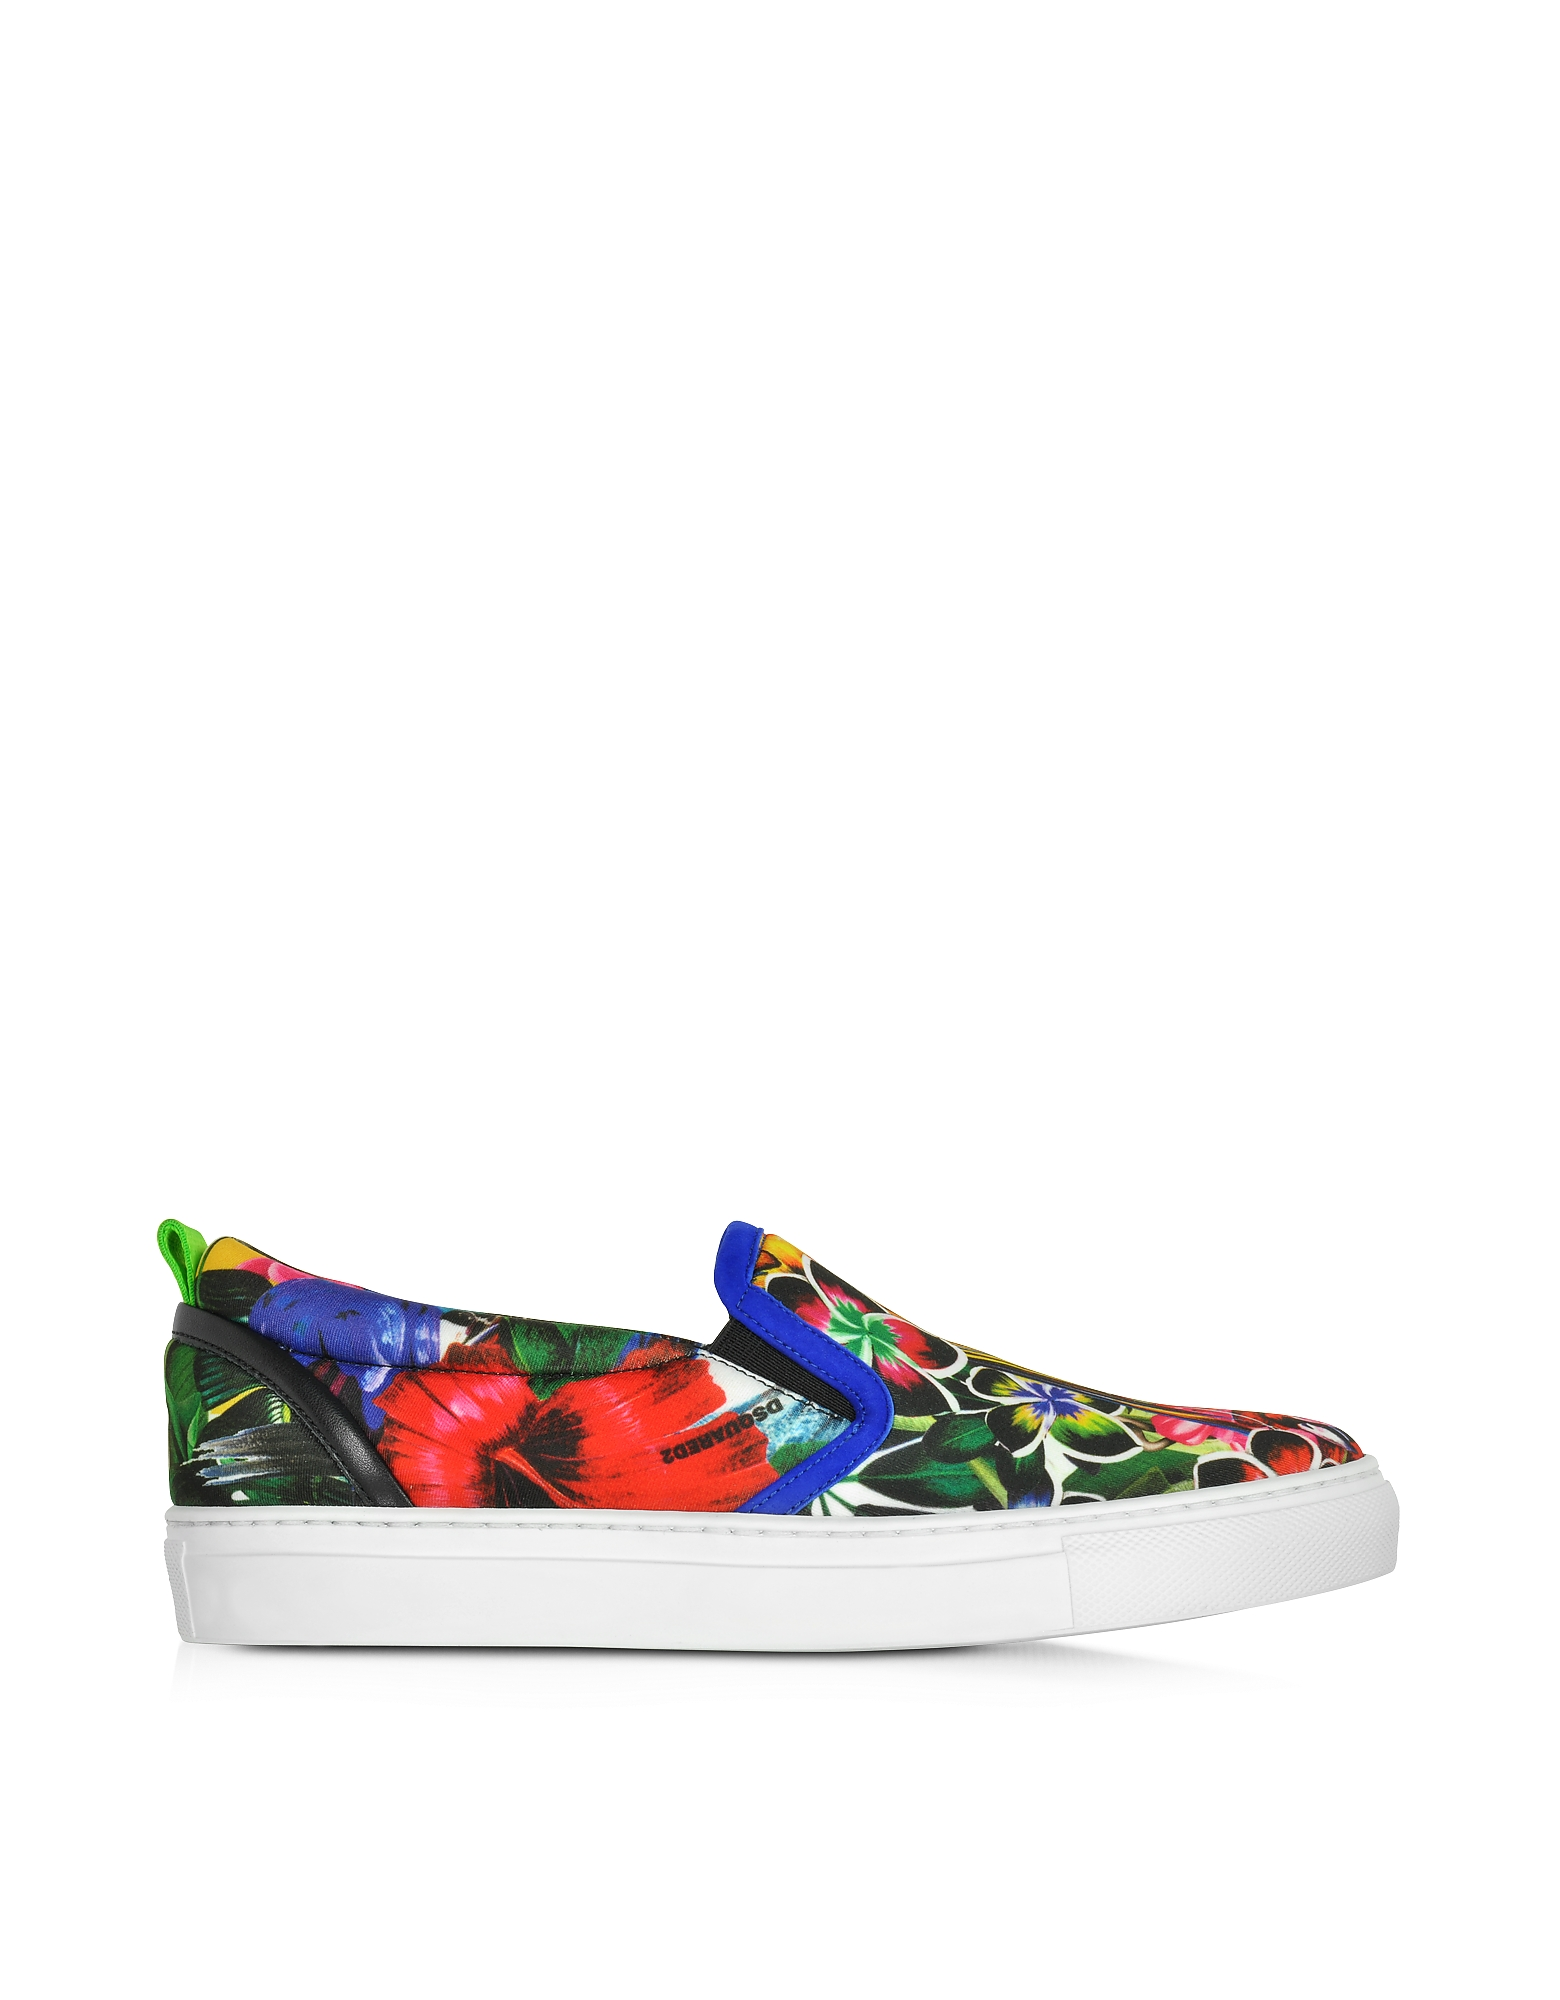 DSquared2 Shoes, Surfers's Paradise Multicolor Landscape Print Slip On Sneaker